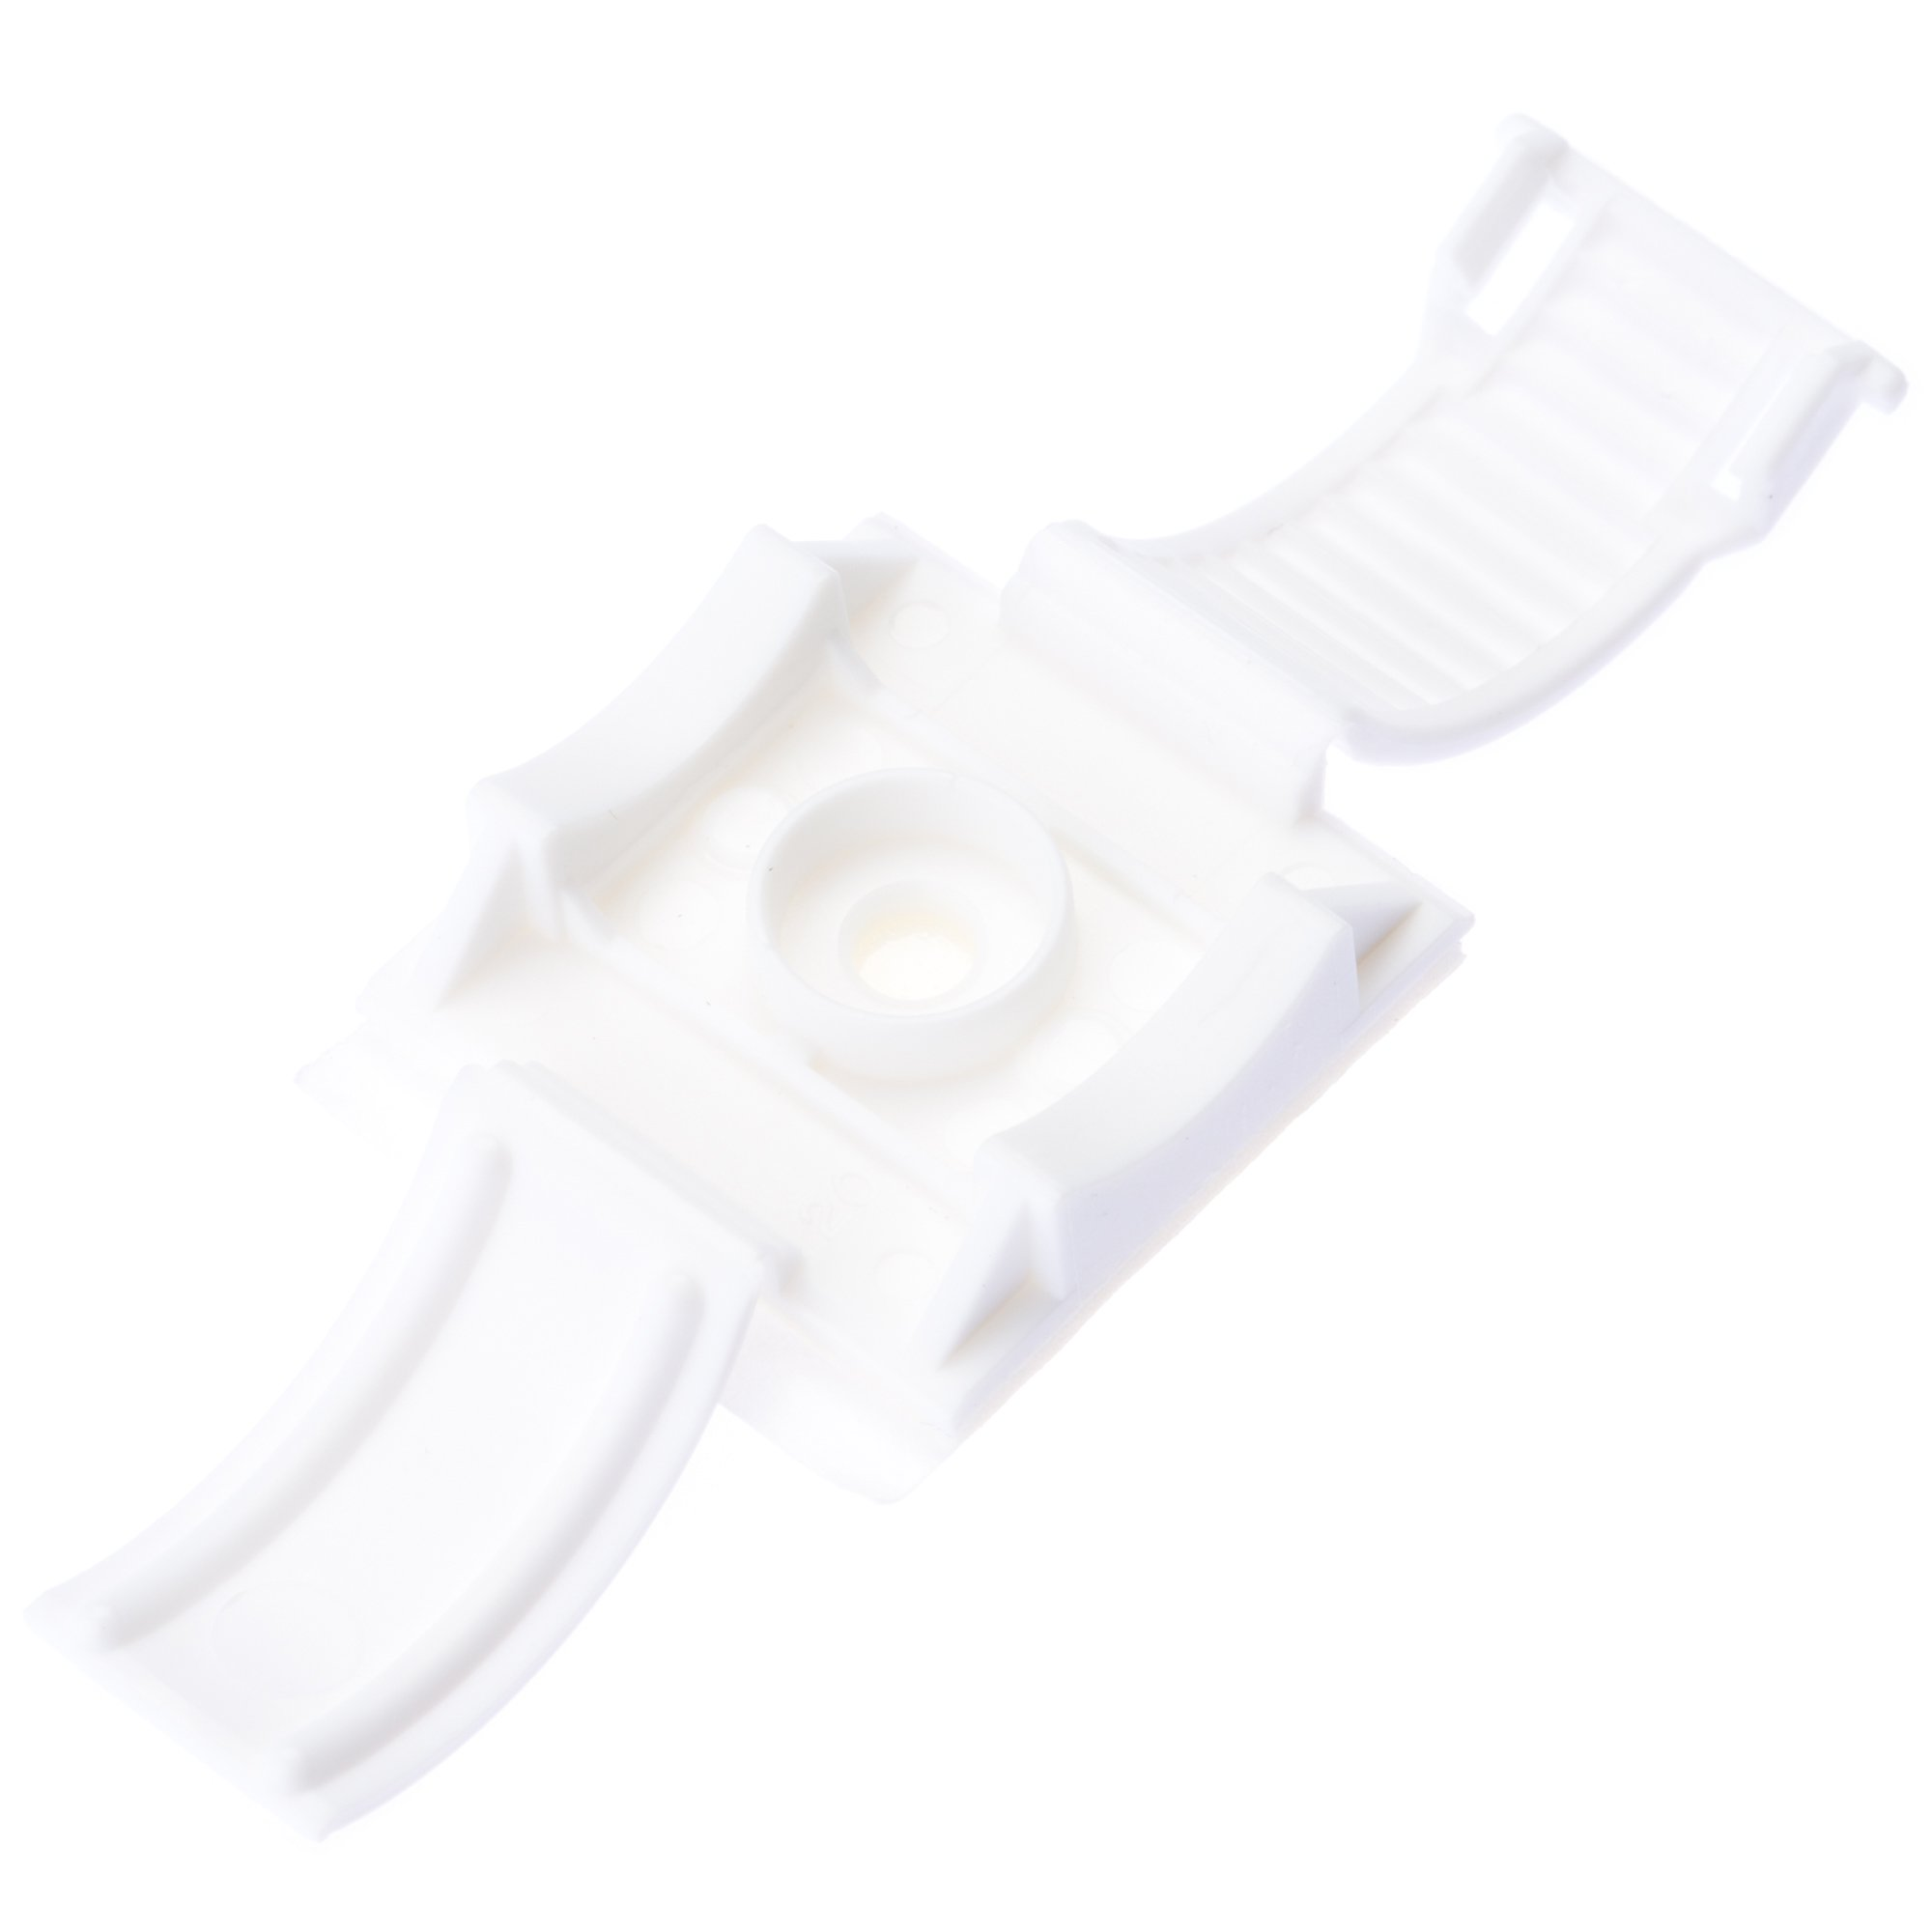 Panduit ARC.68-A-Q Adjustable And Releasable Clamp.69-Inch Bundle (25-Pack)